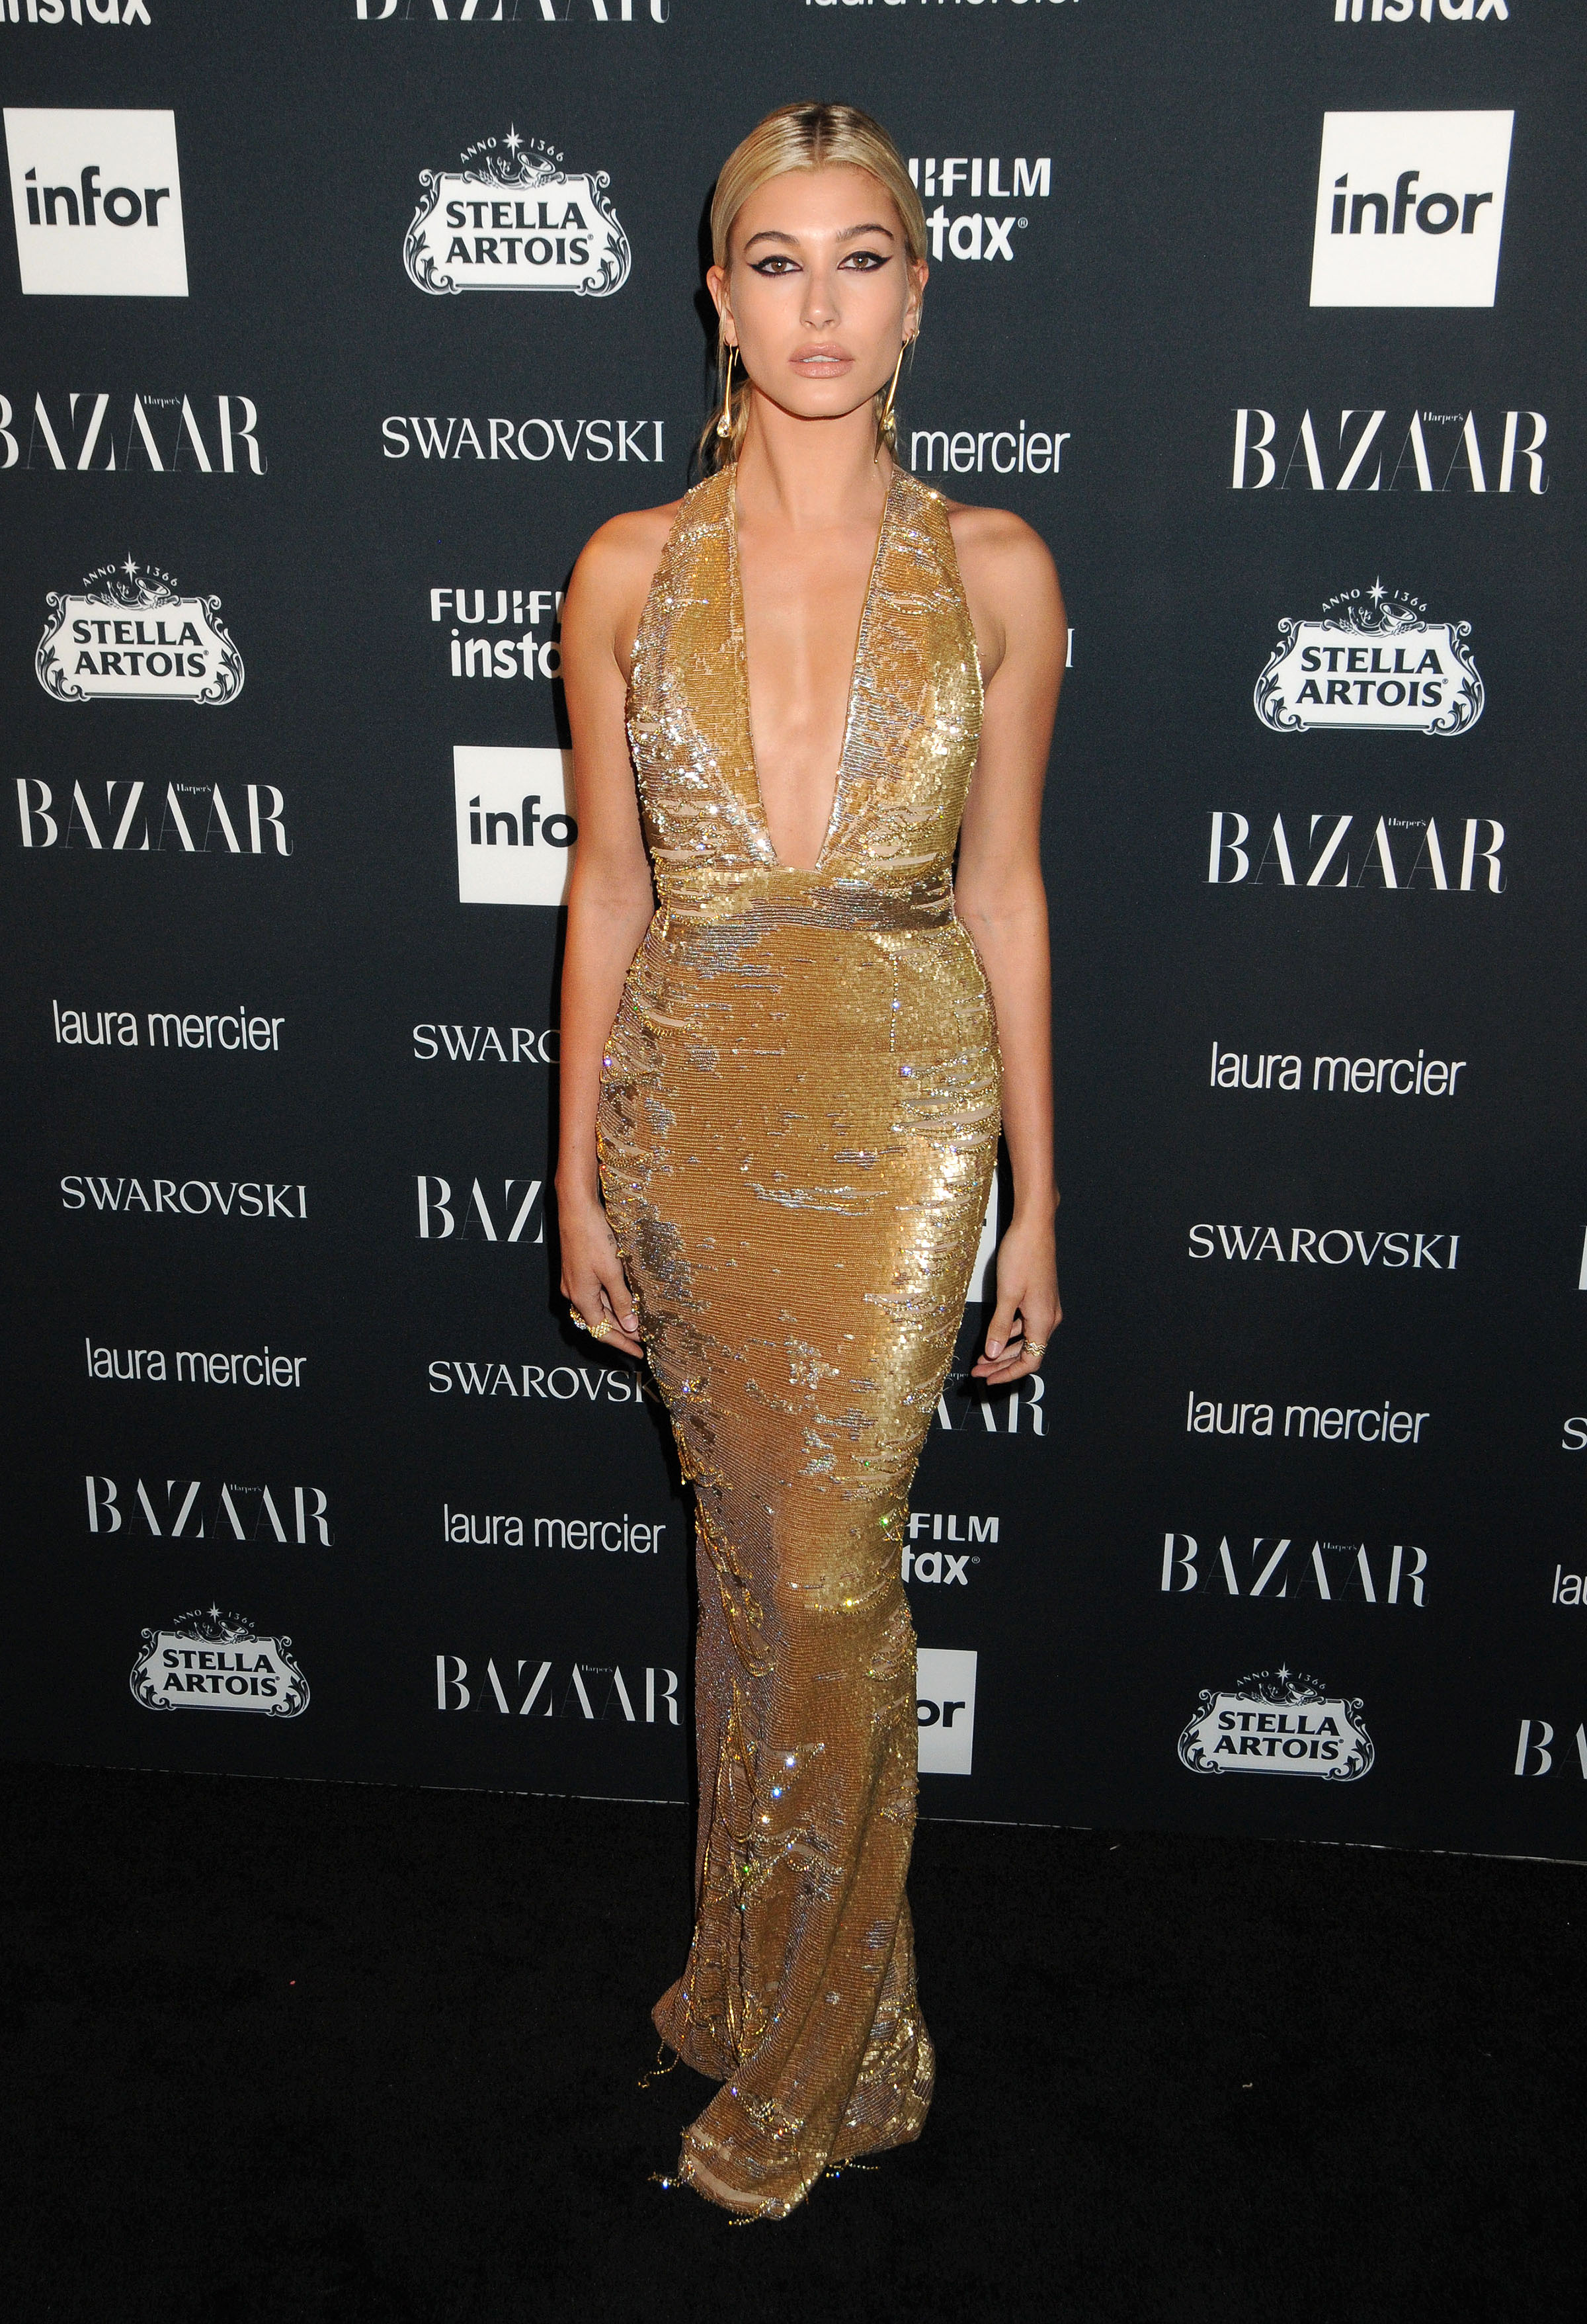 Nicki Minaj and Hailey Baldwin arrives to the 2017 Harper's Bazaar Icons - New York <P> Pictured: Hailey Baldwin <B>Ref: SPL1572837  080917  </B><BR/> Picture by: Johns PkI / Splash News<BR/> </P><P> <B>Splash News and Pictures</B><BR/> Los Angeles:310-821-2666<BR/> New York:212-619-2666<BR/> London:870-934-2666<BR/> <span id=